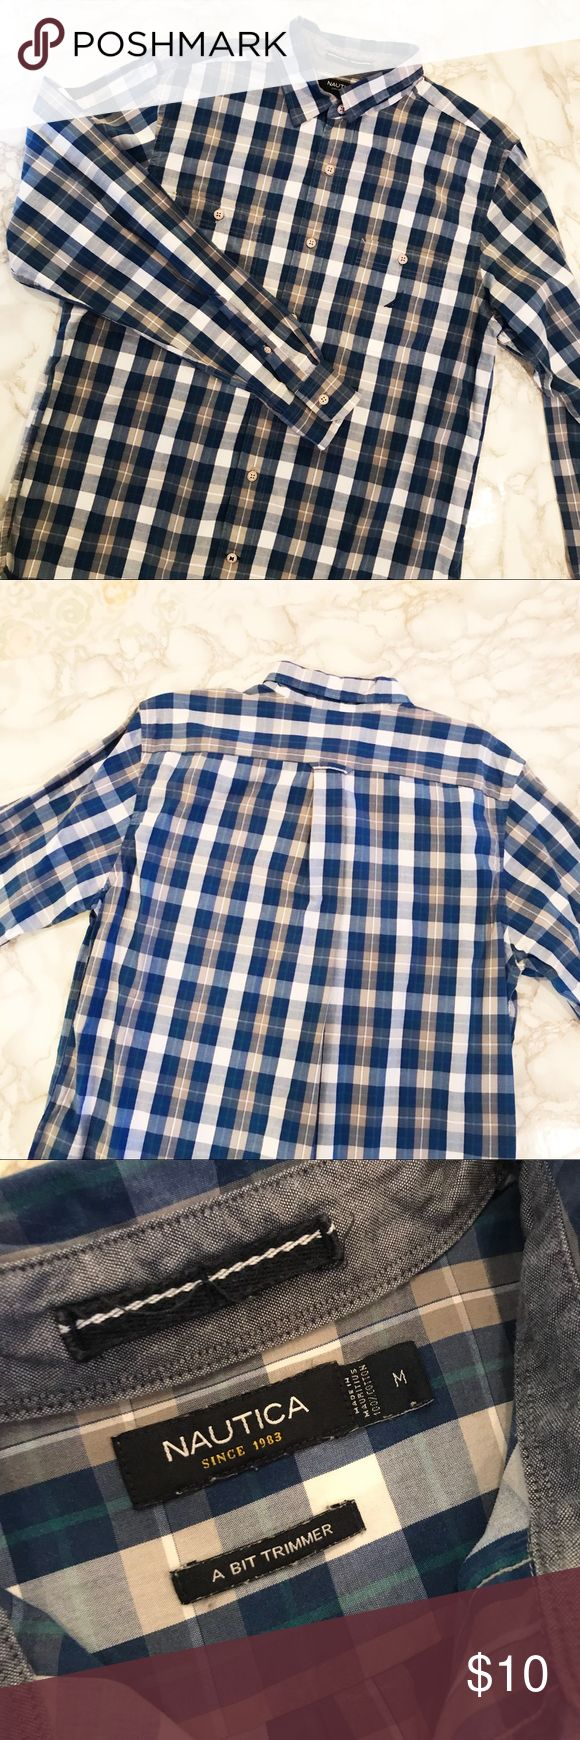 """Nautical Long Sleeve Shirt Blue checkered long sleeve shirt for men from Nautica. Size M. Shirt length 32"""", sleeve 26"""", chest 20"""". In great condition. No sweat stains. 100% cotton. My husband doesn't want it any more. Nautica Shirts Casual Button Down Shirts"""